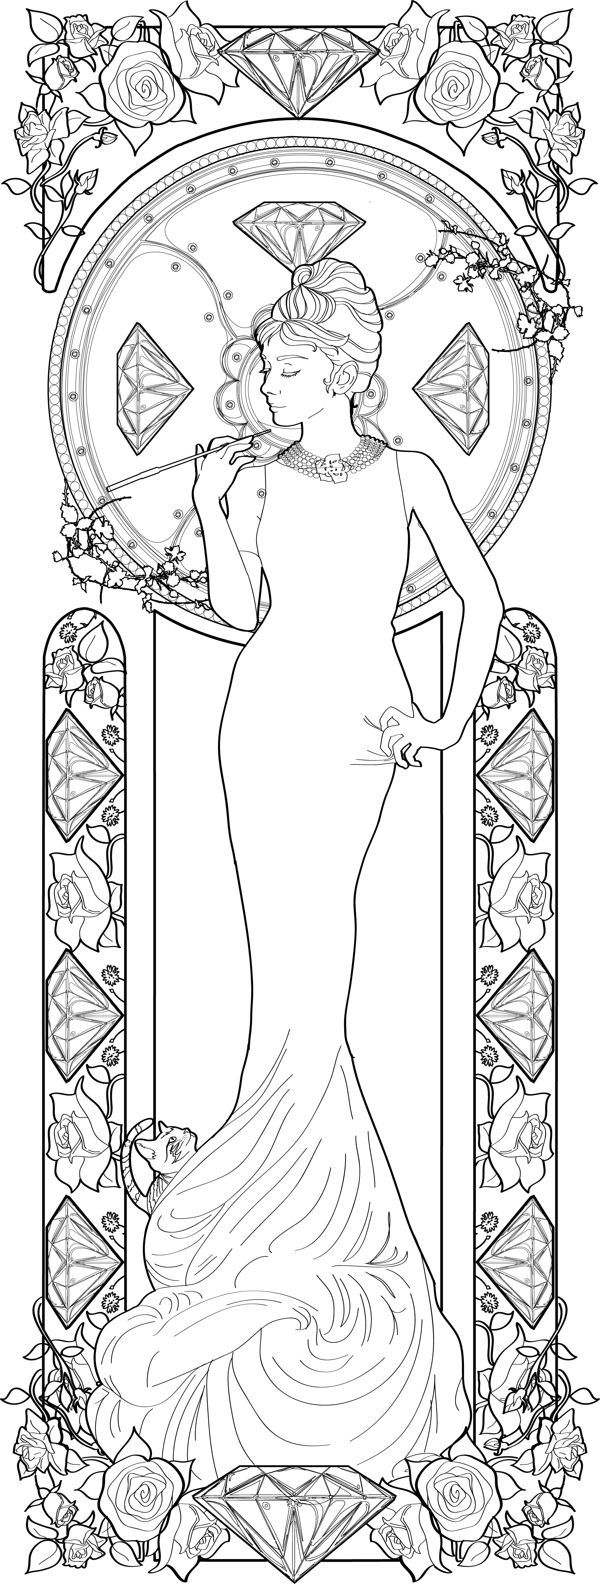 Alphonse Mucha coloring pages | Audrey Hepburn by Azael OlmosHoliday Quotes, Hepburn Sketches, Hepburn ...